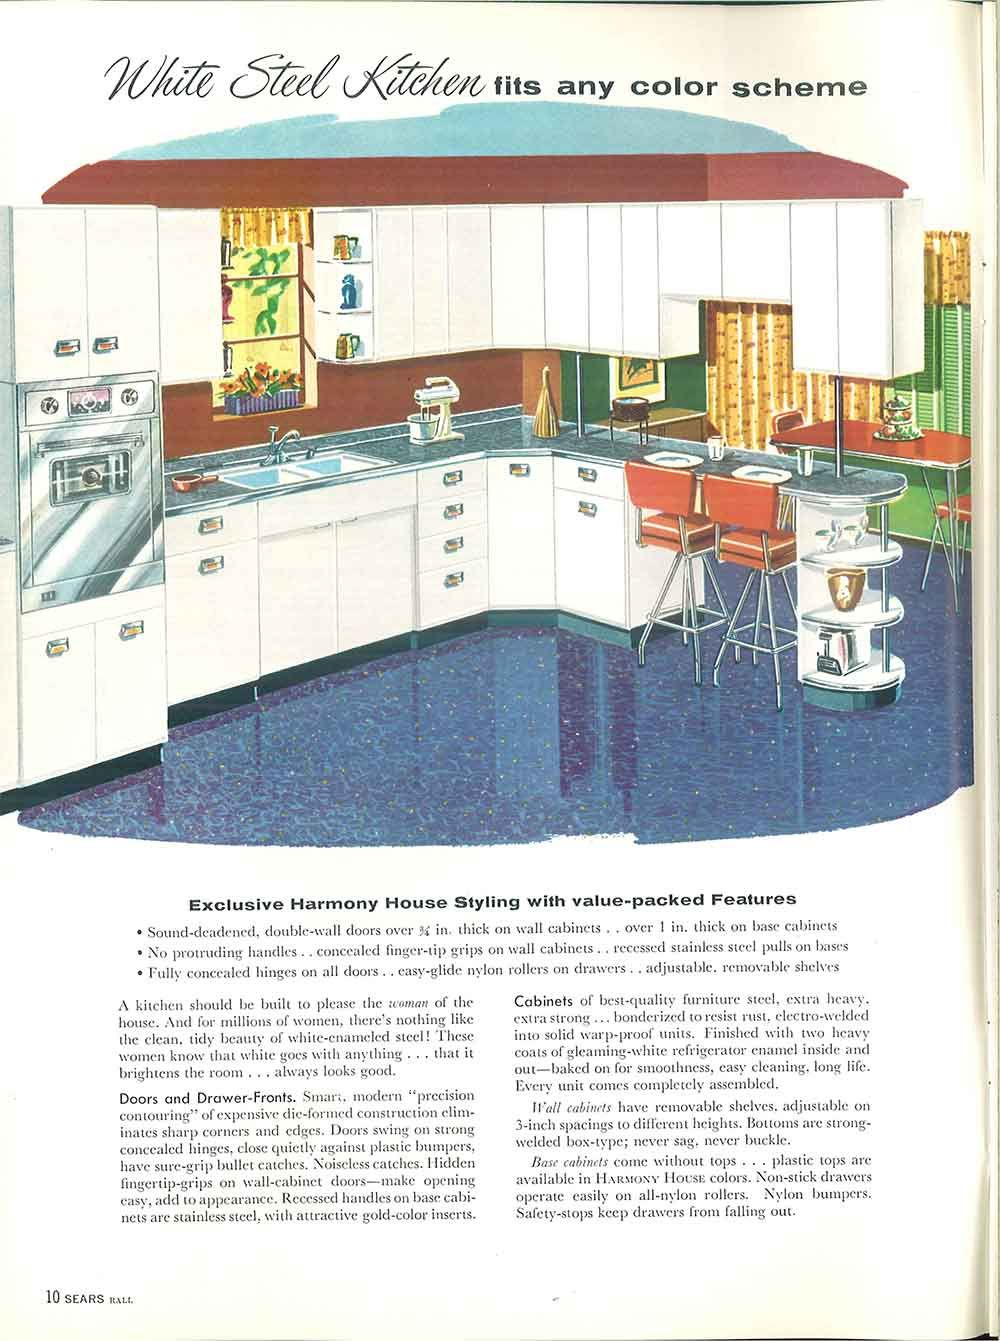 1958 Sears kitchen cabinets and more - 32 page catalog | Retro ...